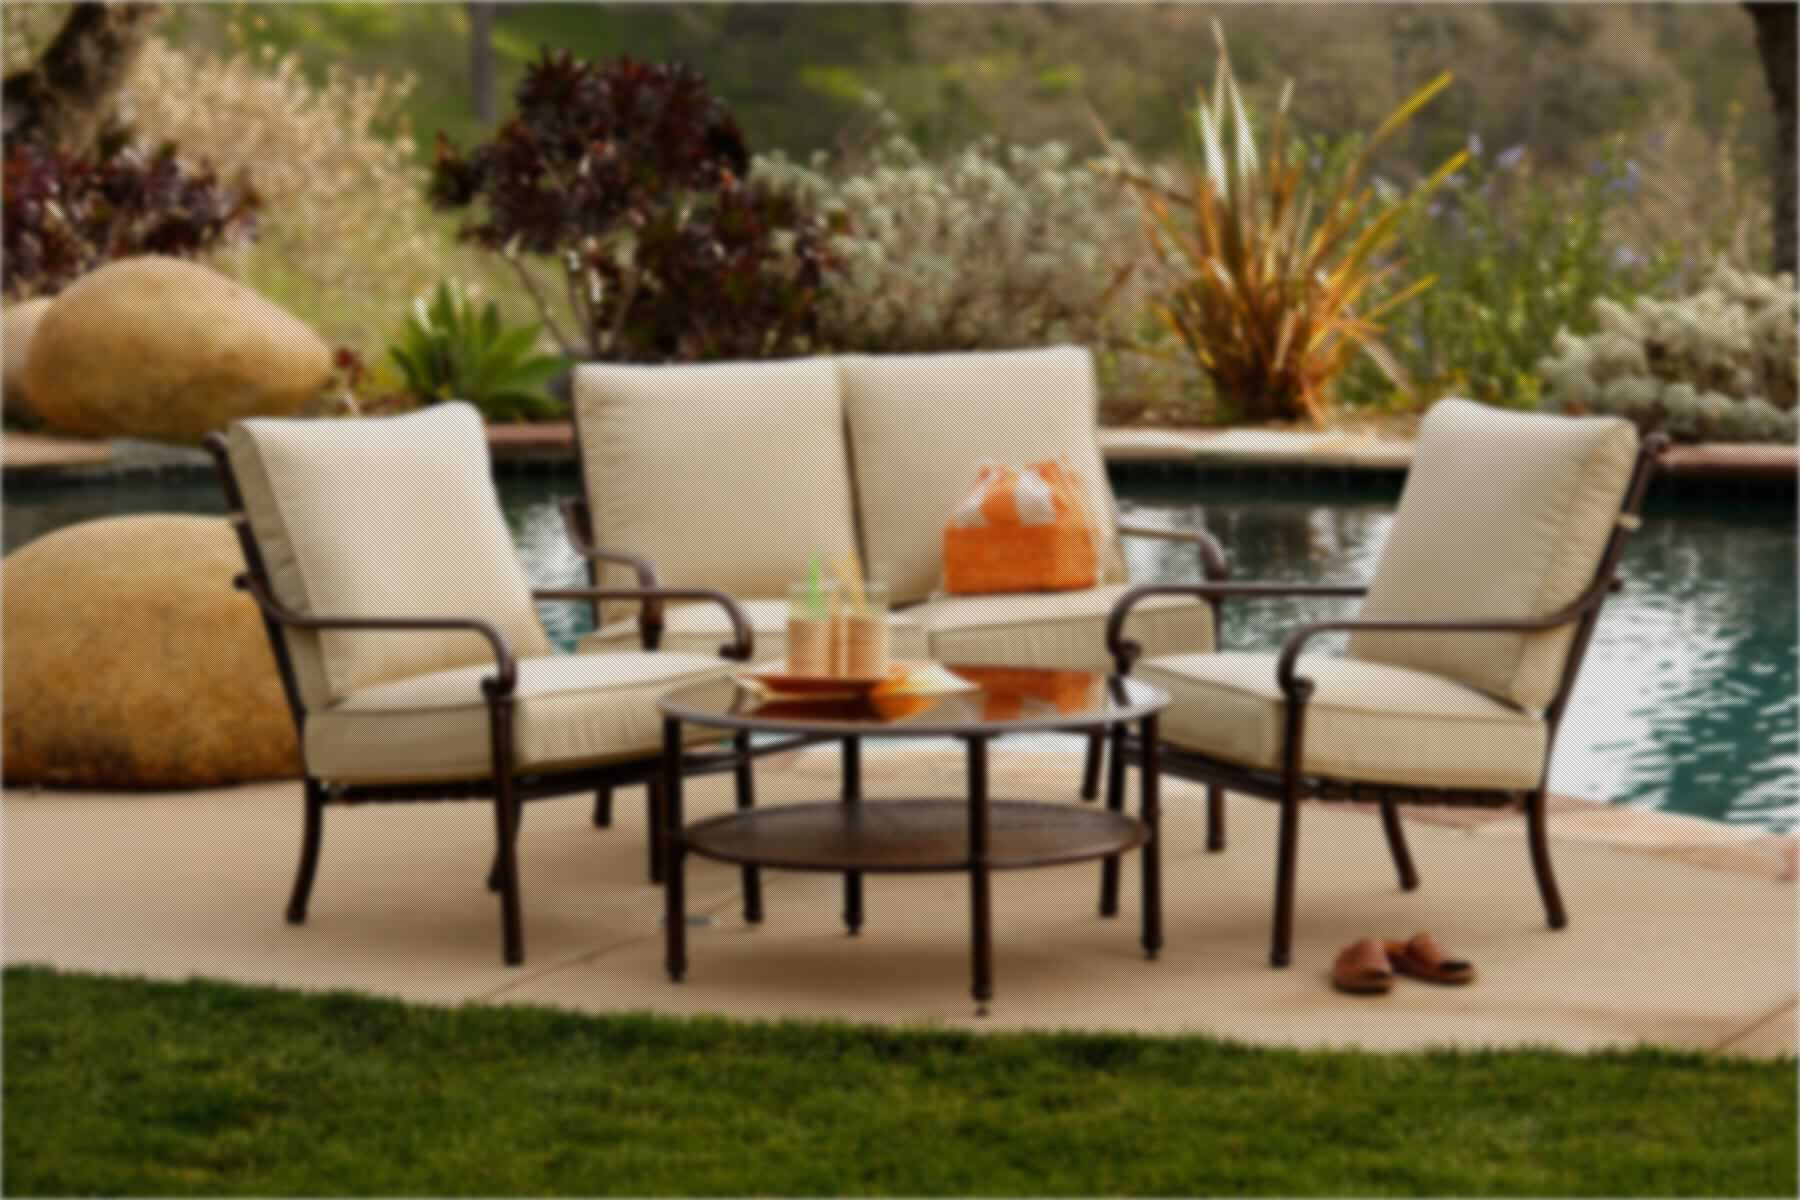 Quality Indoor and Outdoor Furniture Home Furnishings and Gifts